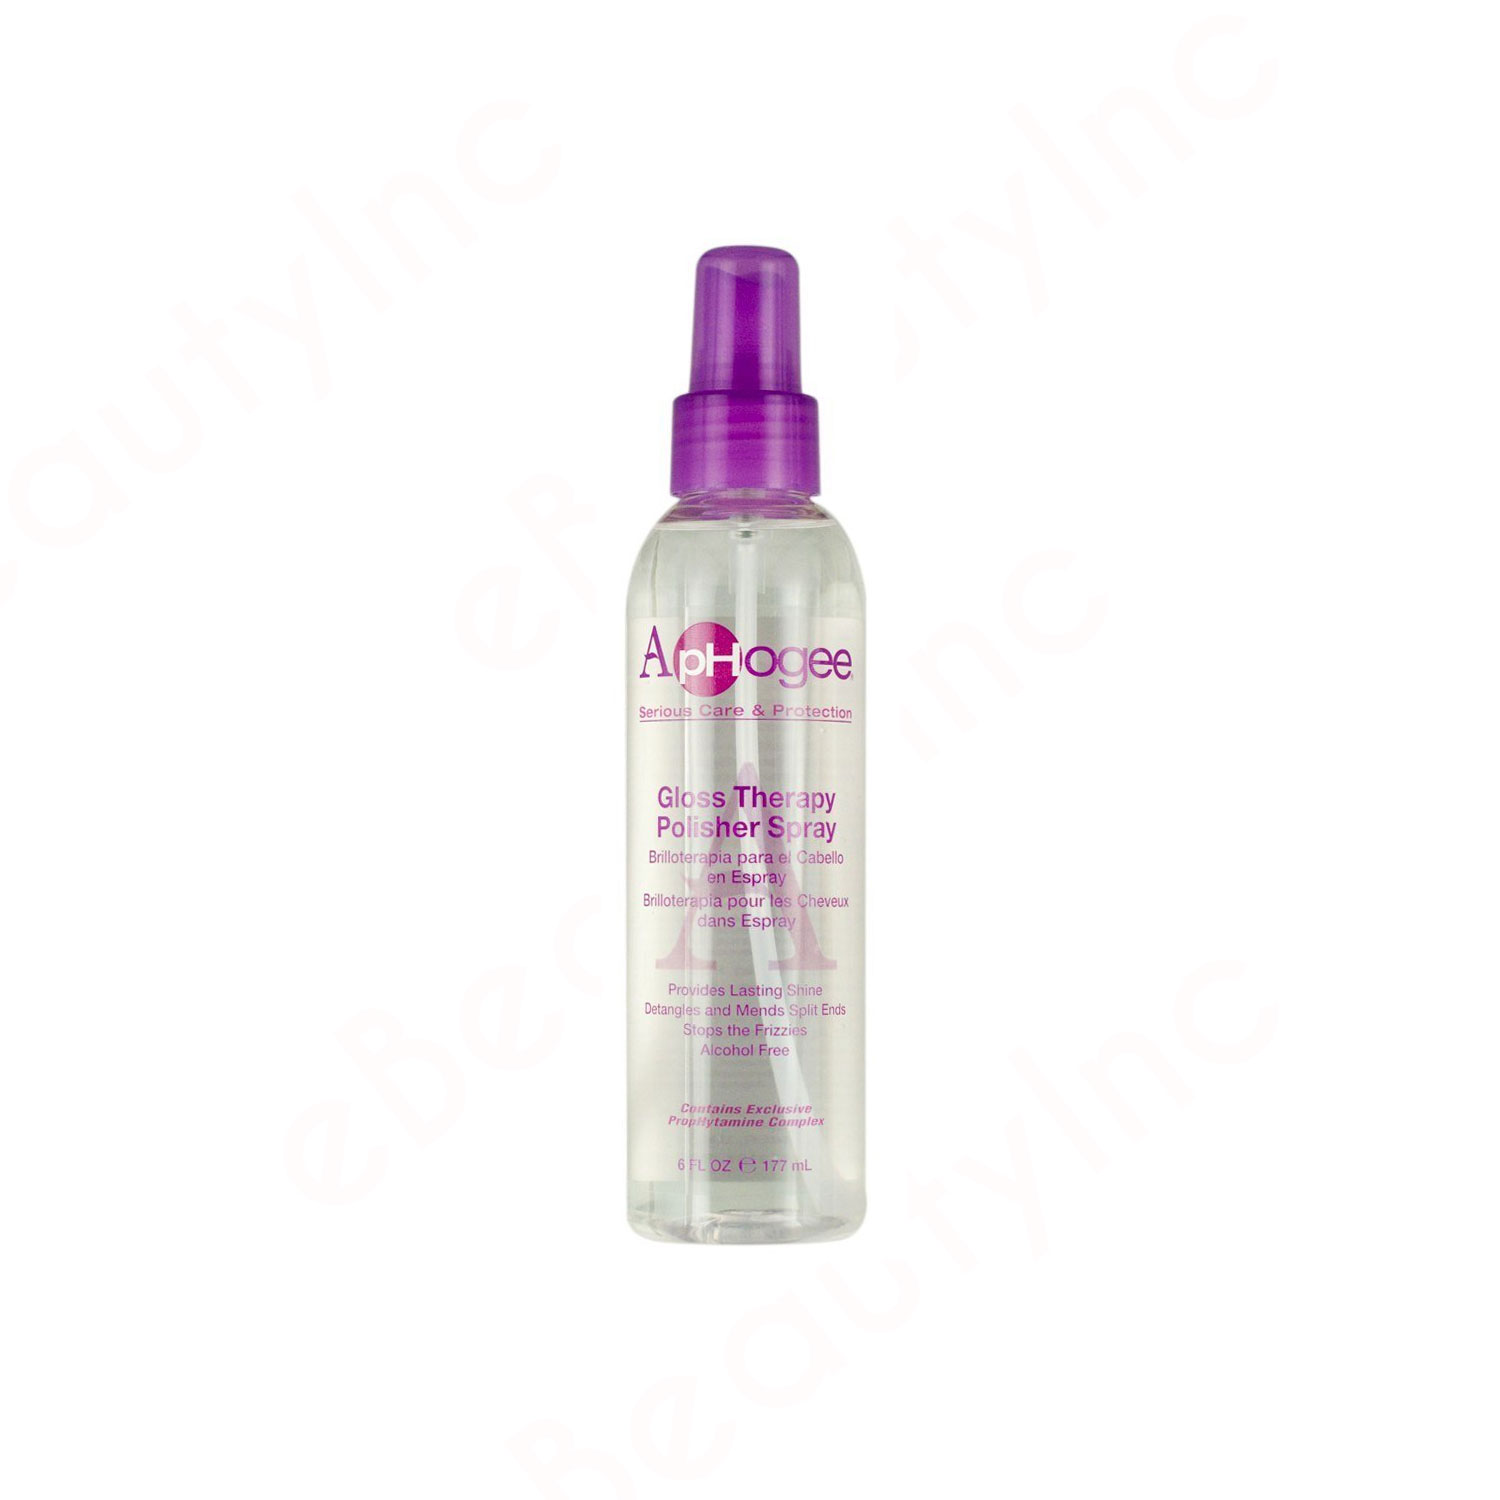 Image of Aphogee Gloss Therapy Polisher Spray - 6oz